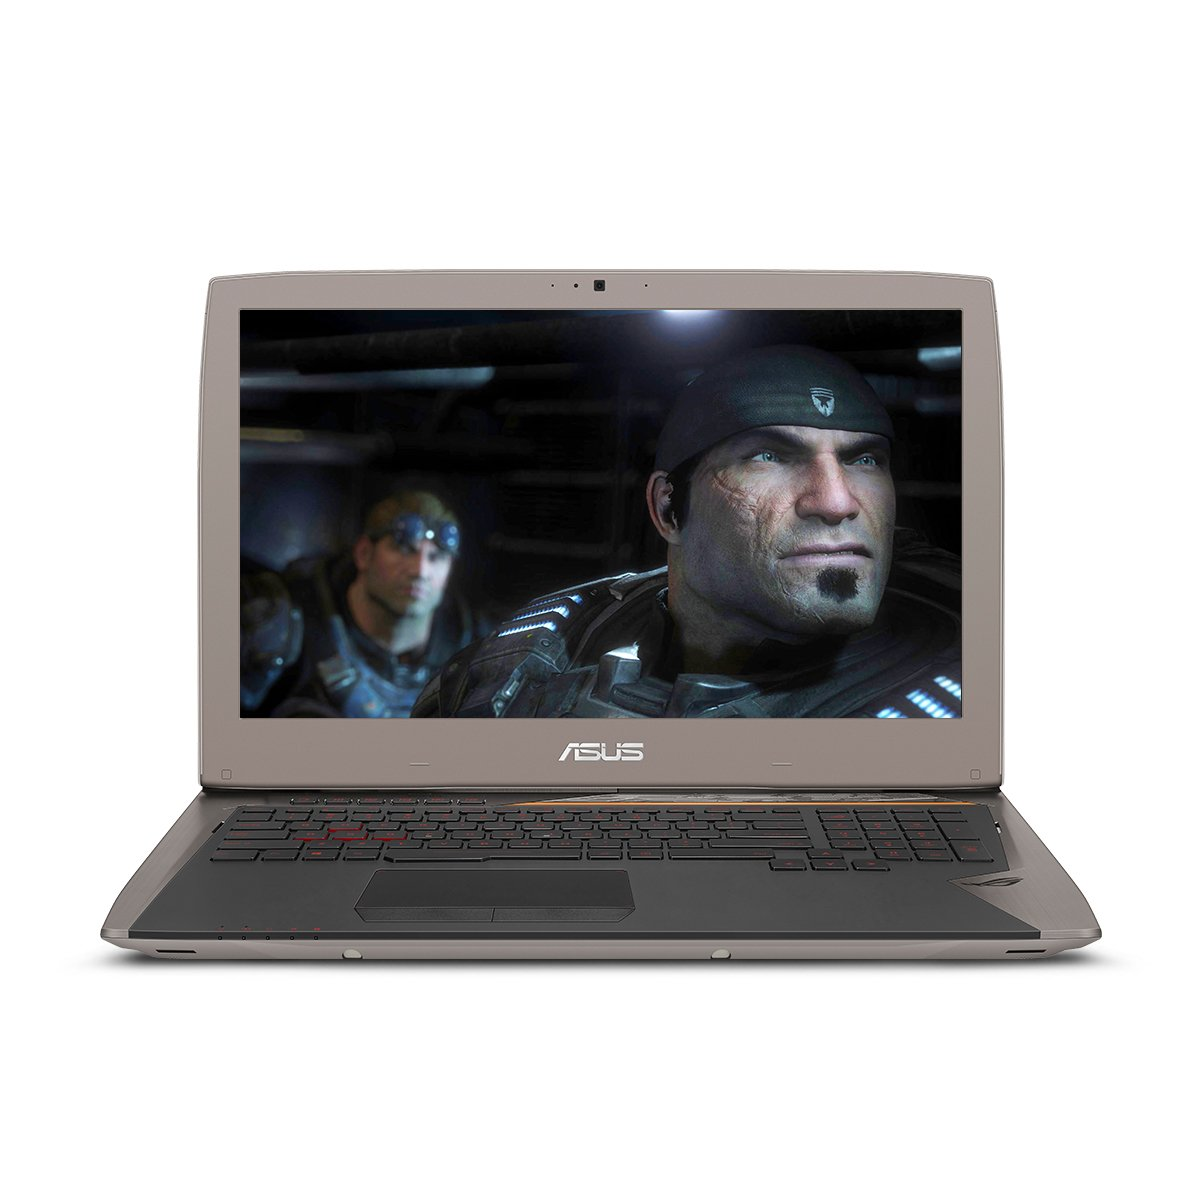 ASUS G701VI-XS72K OC Edition Gaming Laptop Black Friday Deal